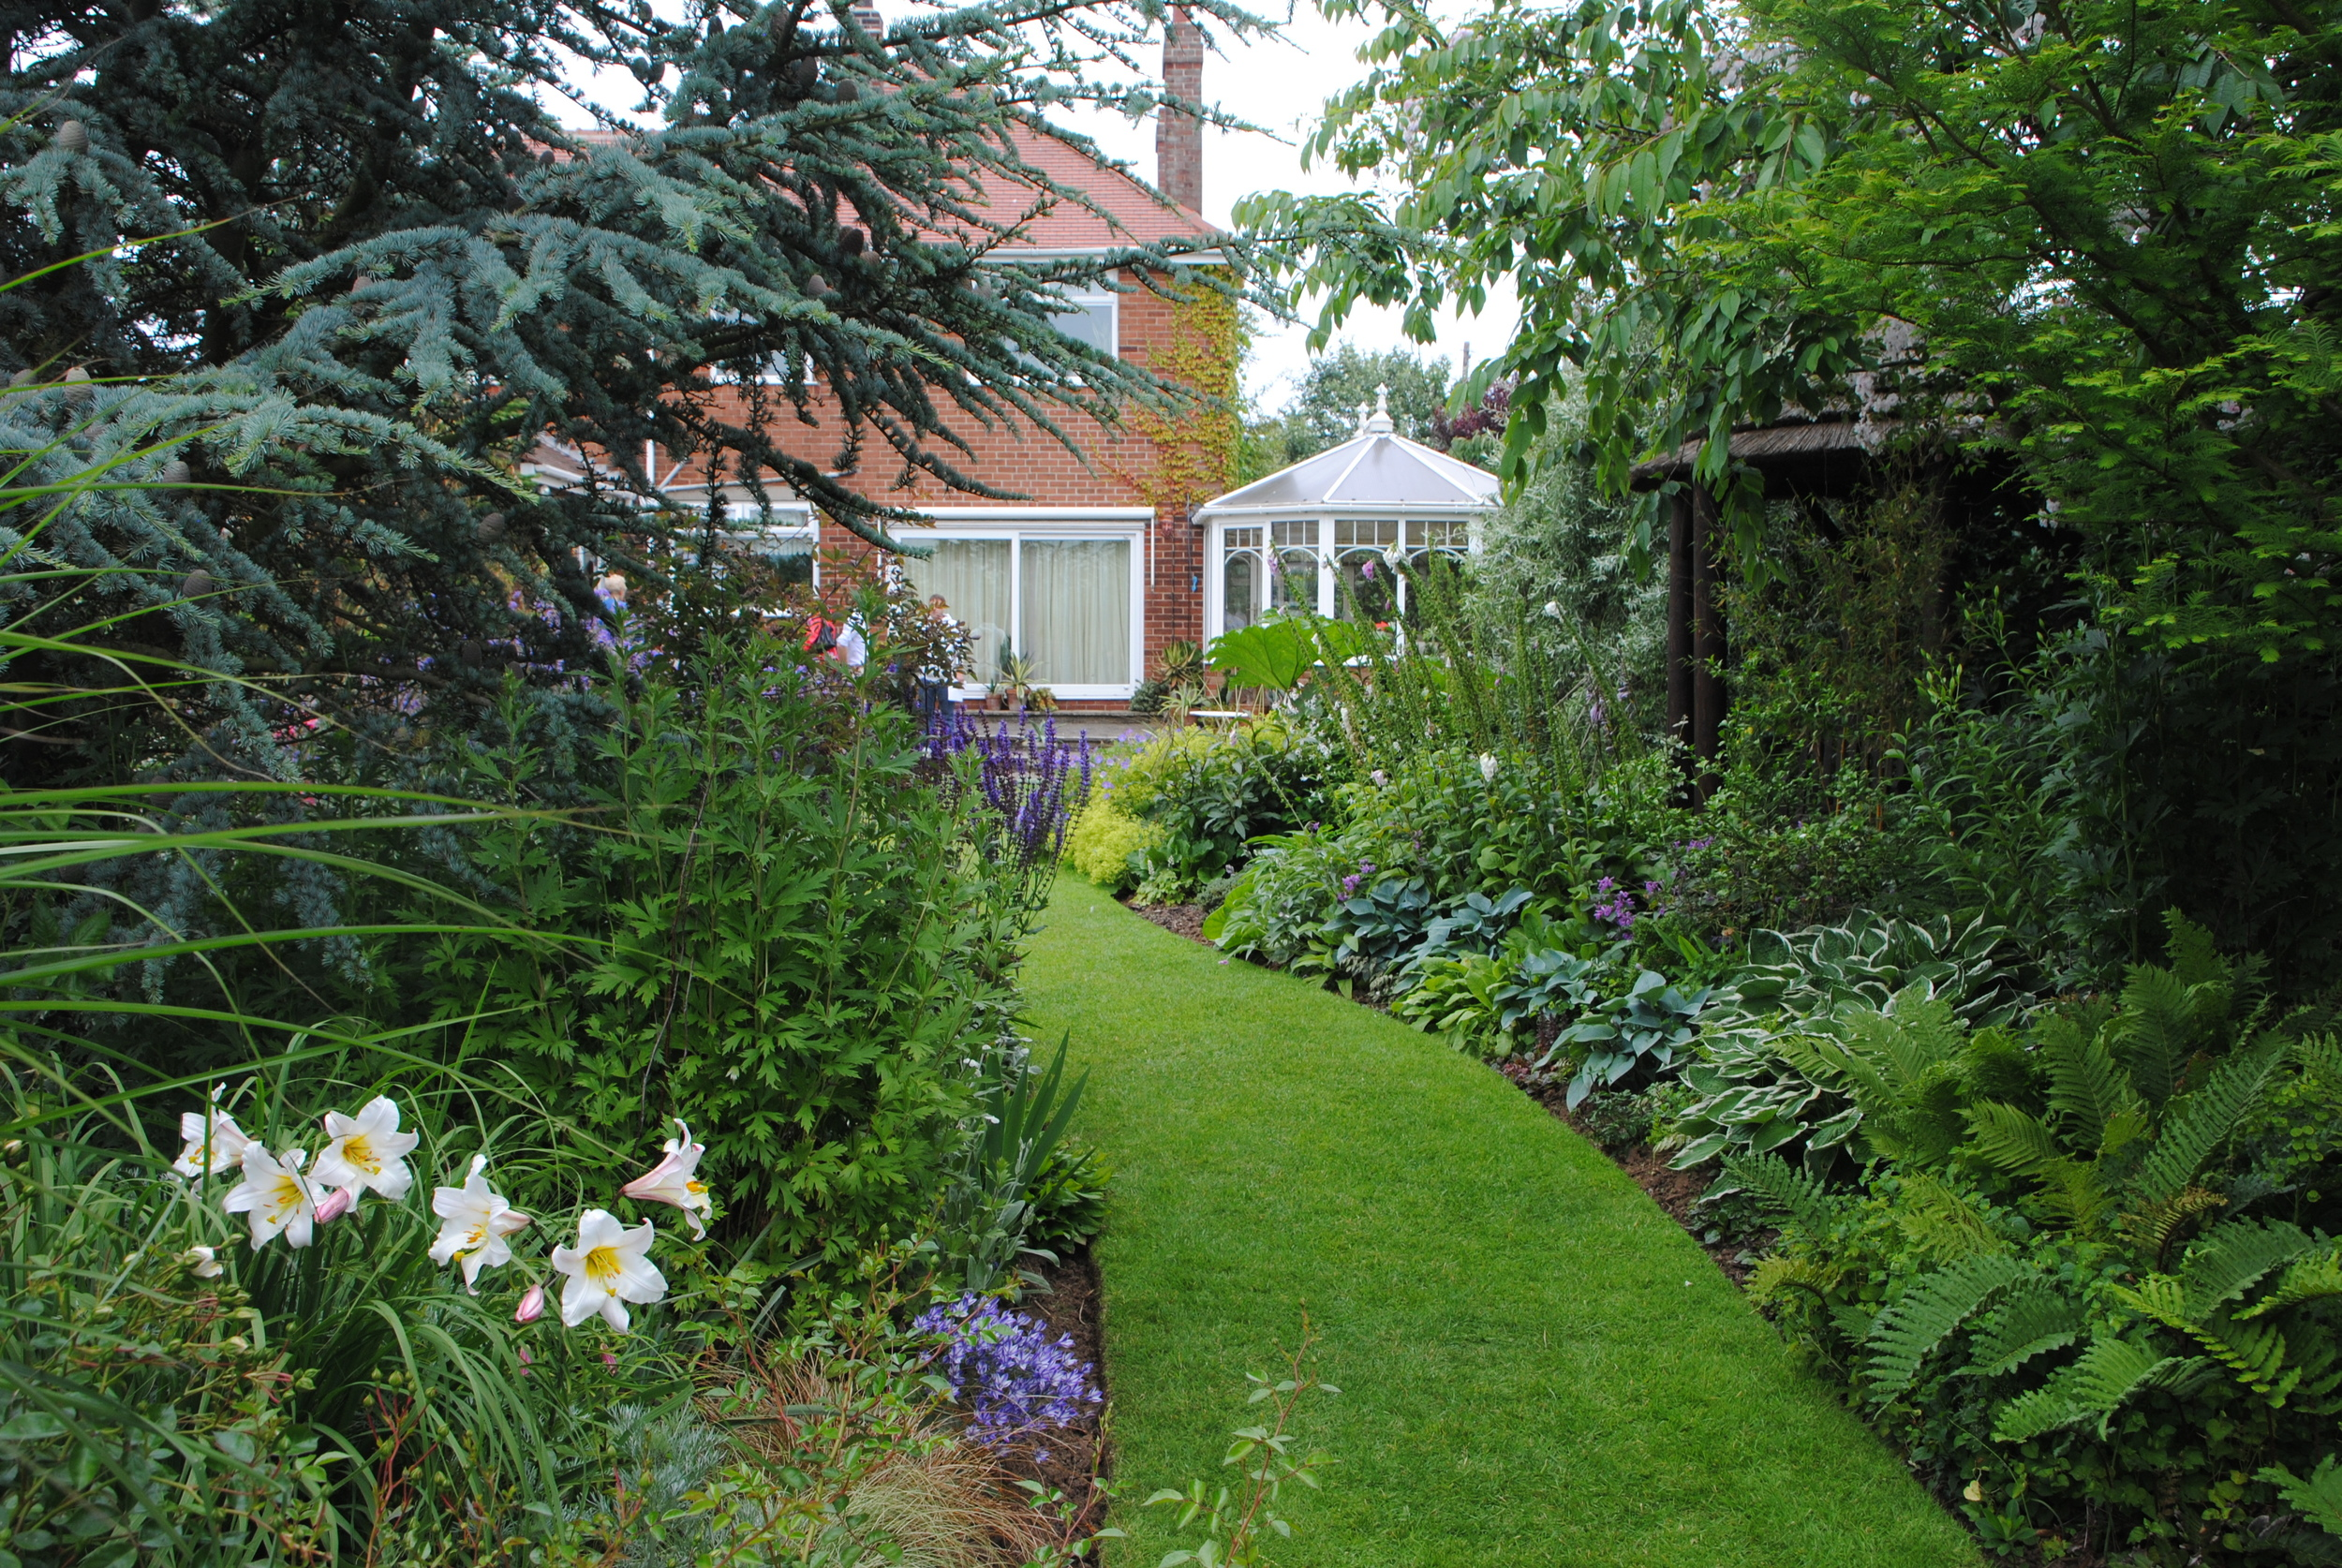 Lush borders and winding paths make the garden seem much larger than its actual size.